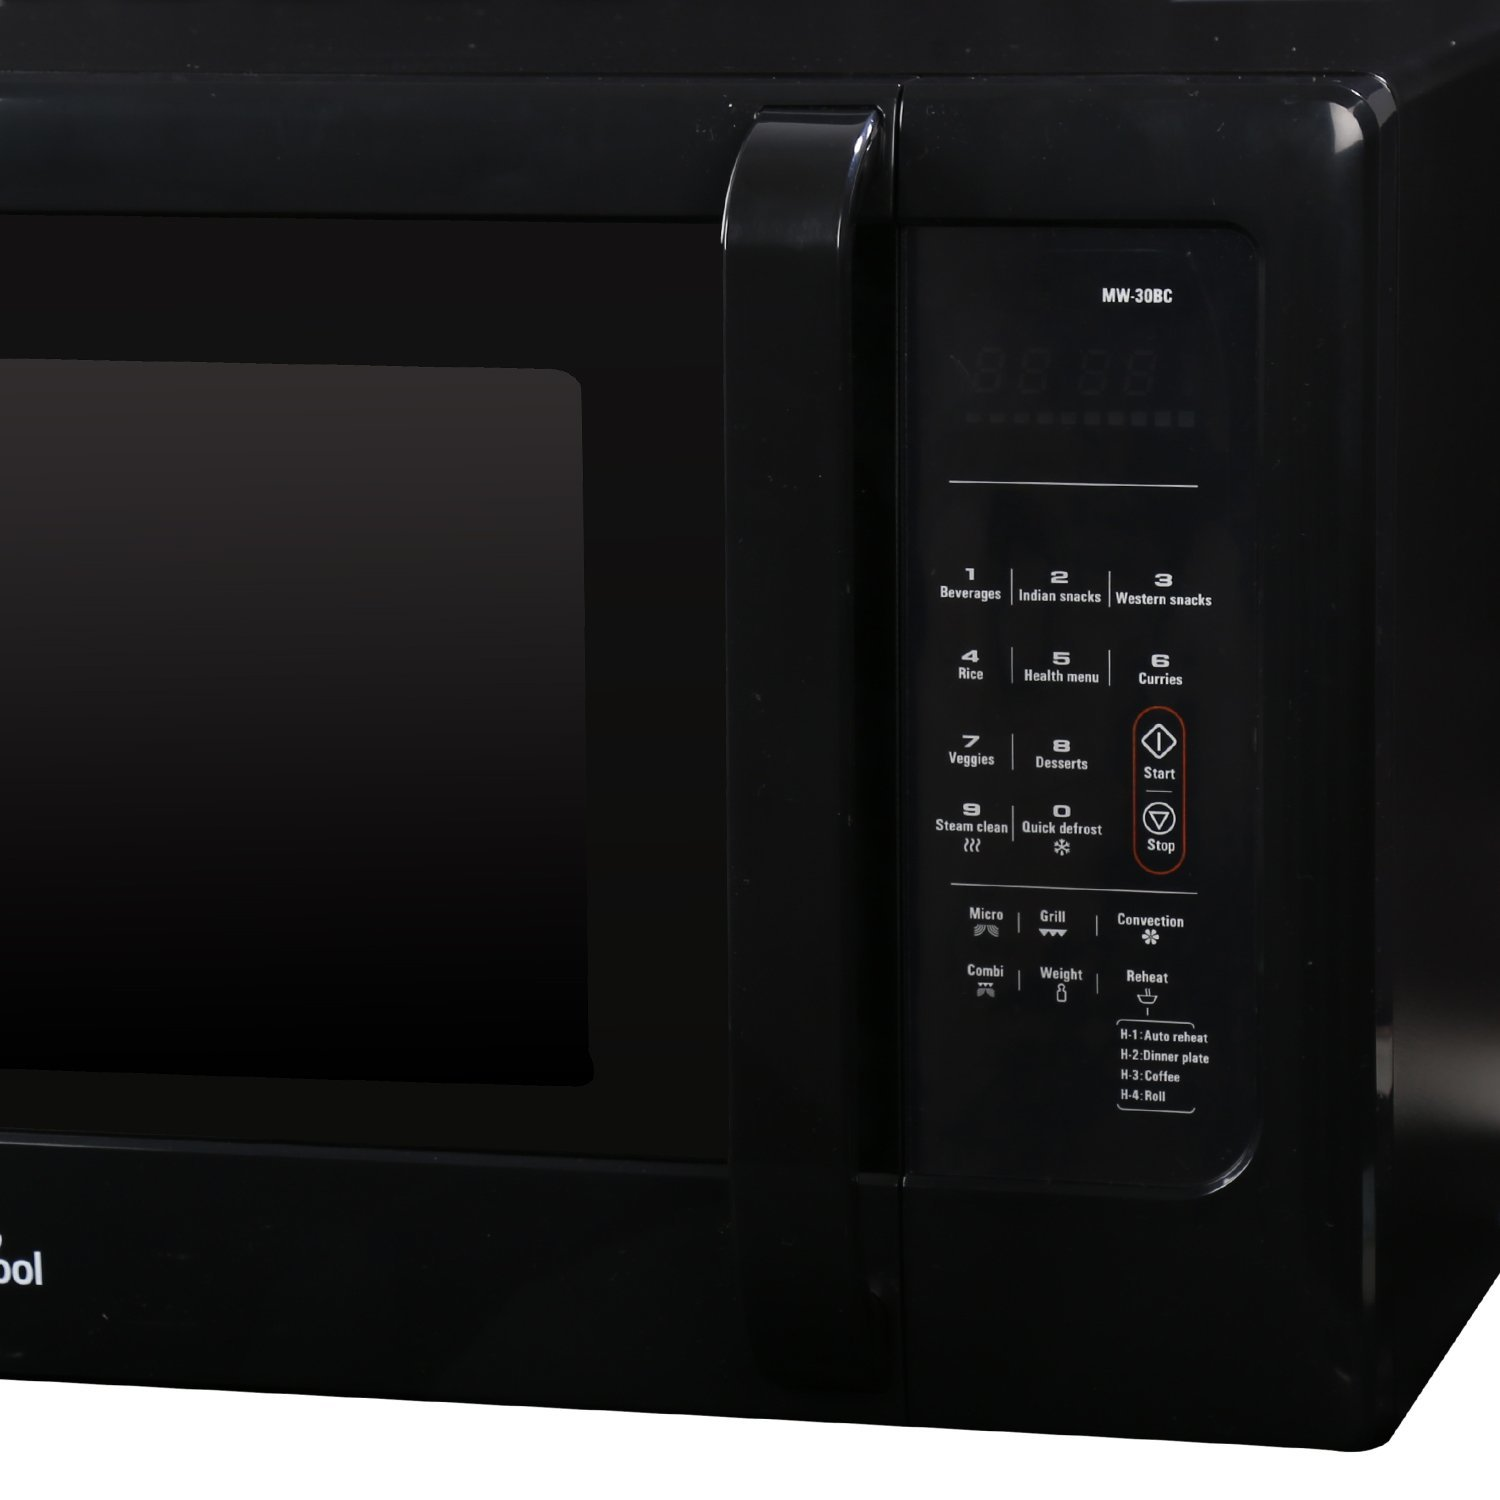 Whirlpool 30 L Convection Microwave Oven (MW 30 BC, Solid Black)